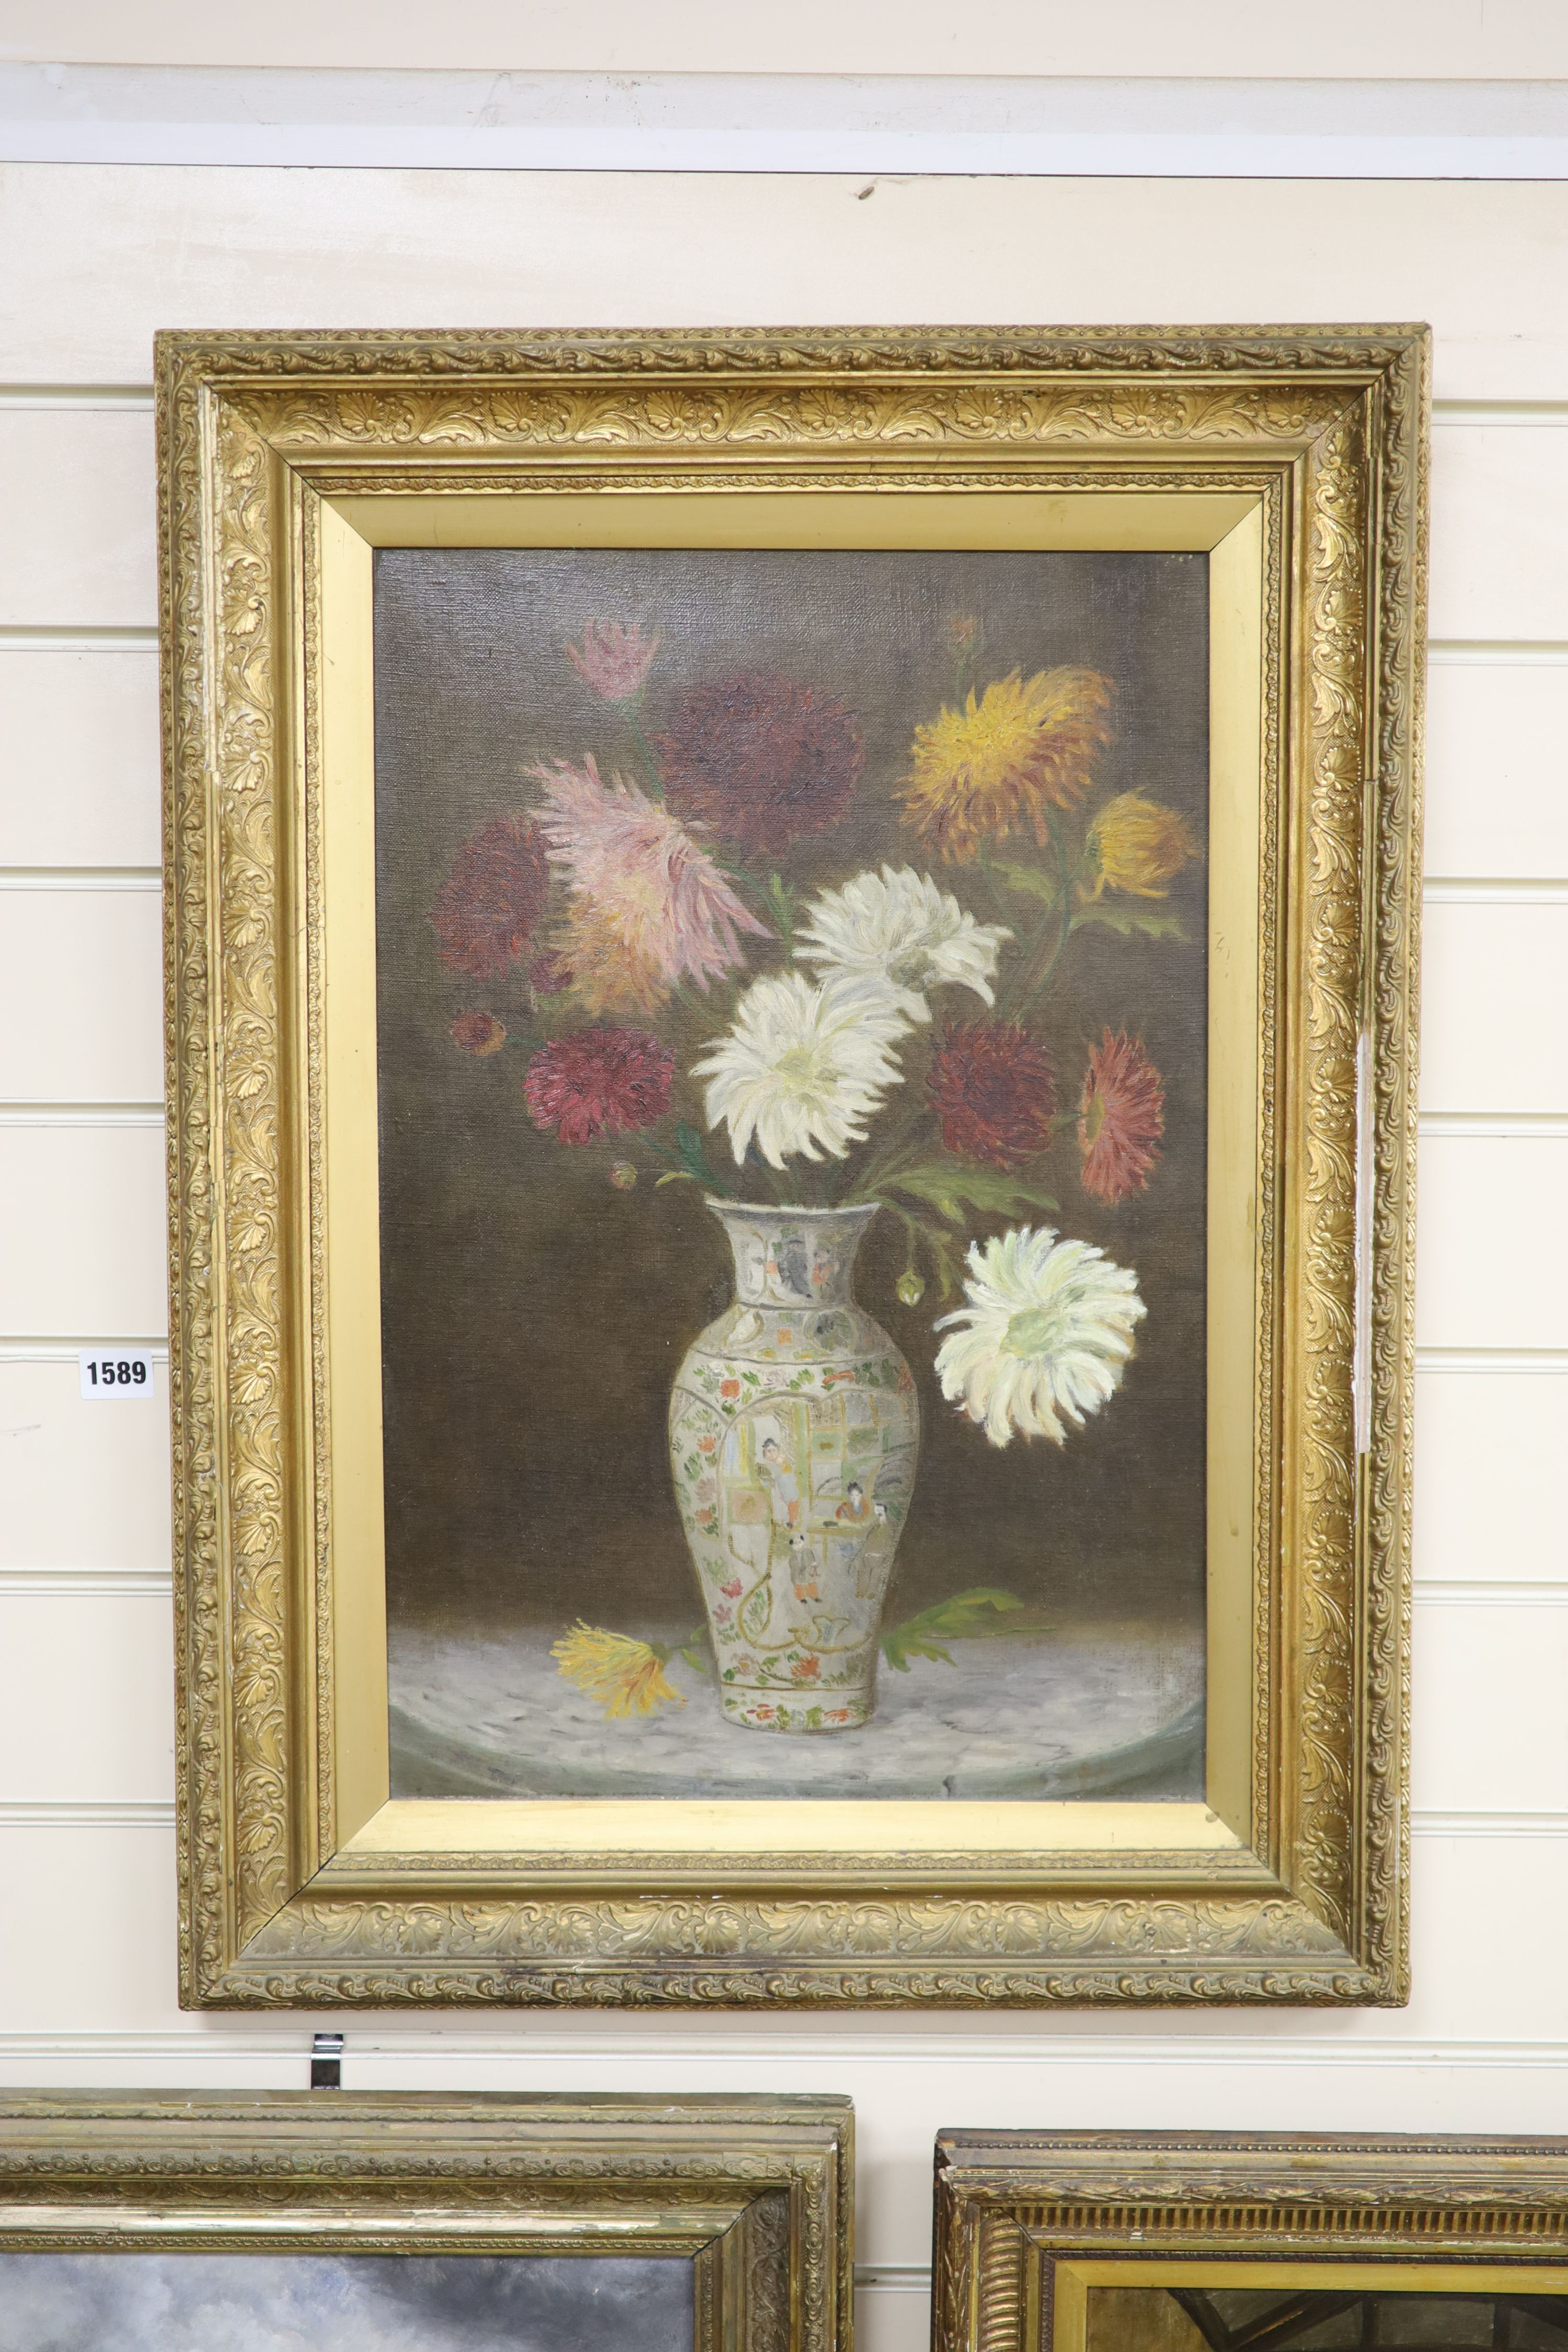 English school c.1900, three oils on canvas, Still life of flowers in a Chinese vase, 52 x 35cm, - Image 3 of 5